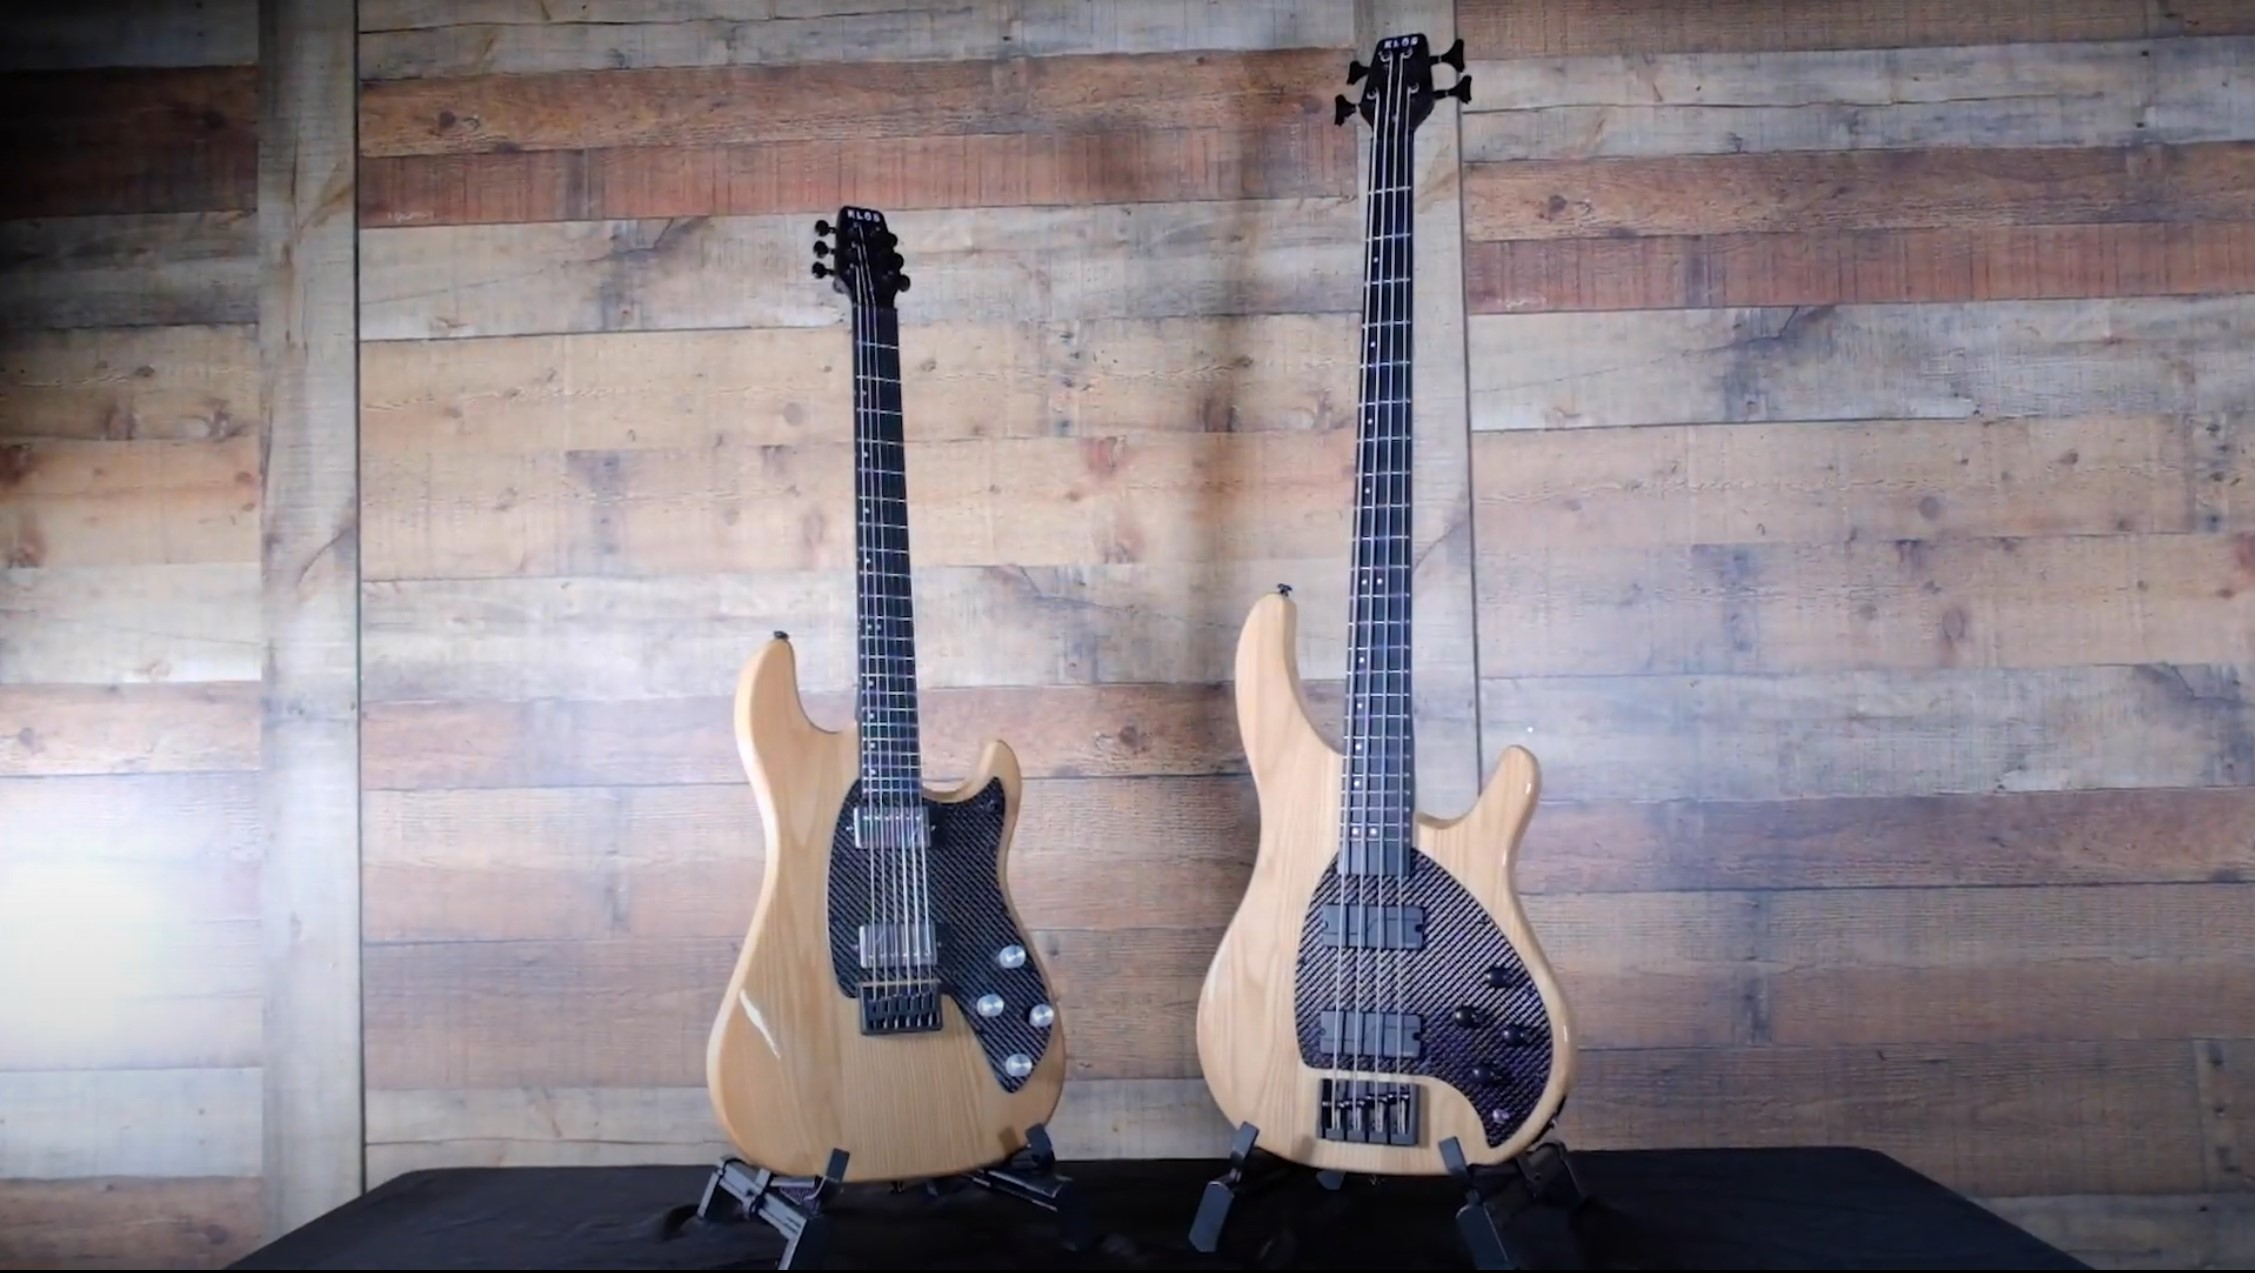 Klos apollo series electric guitar and bass launch